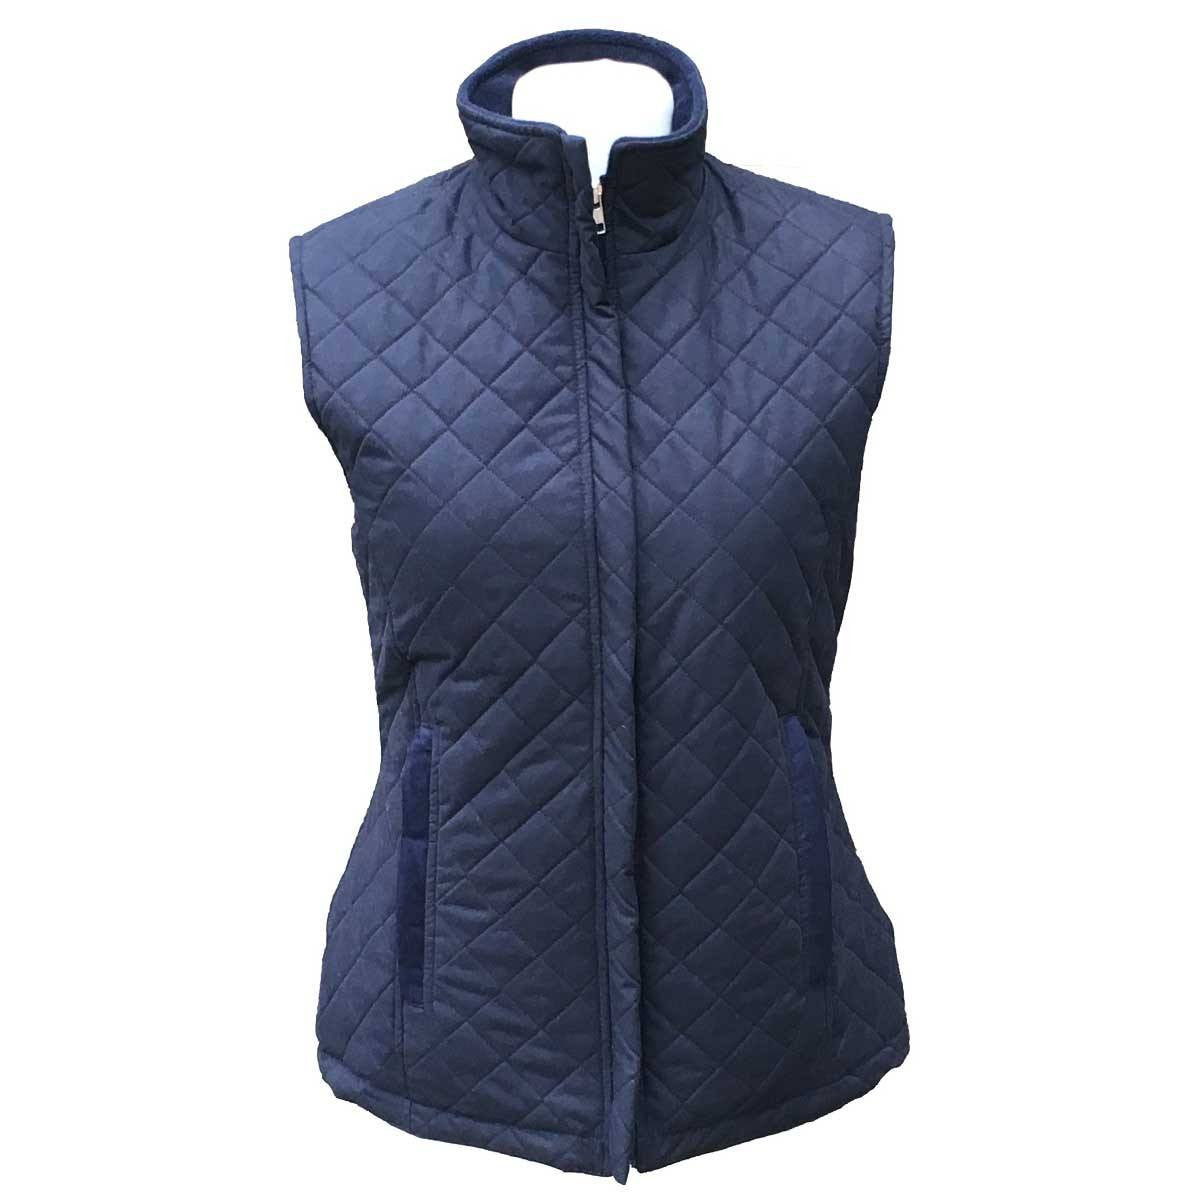 Navy Quilted Gilet – Annabel Brocks : quilted gilet - Adamdwight.com